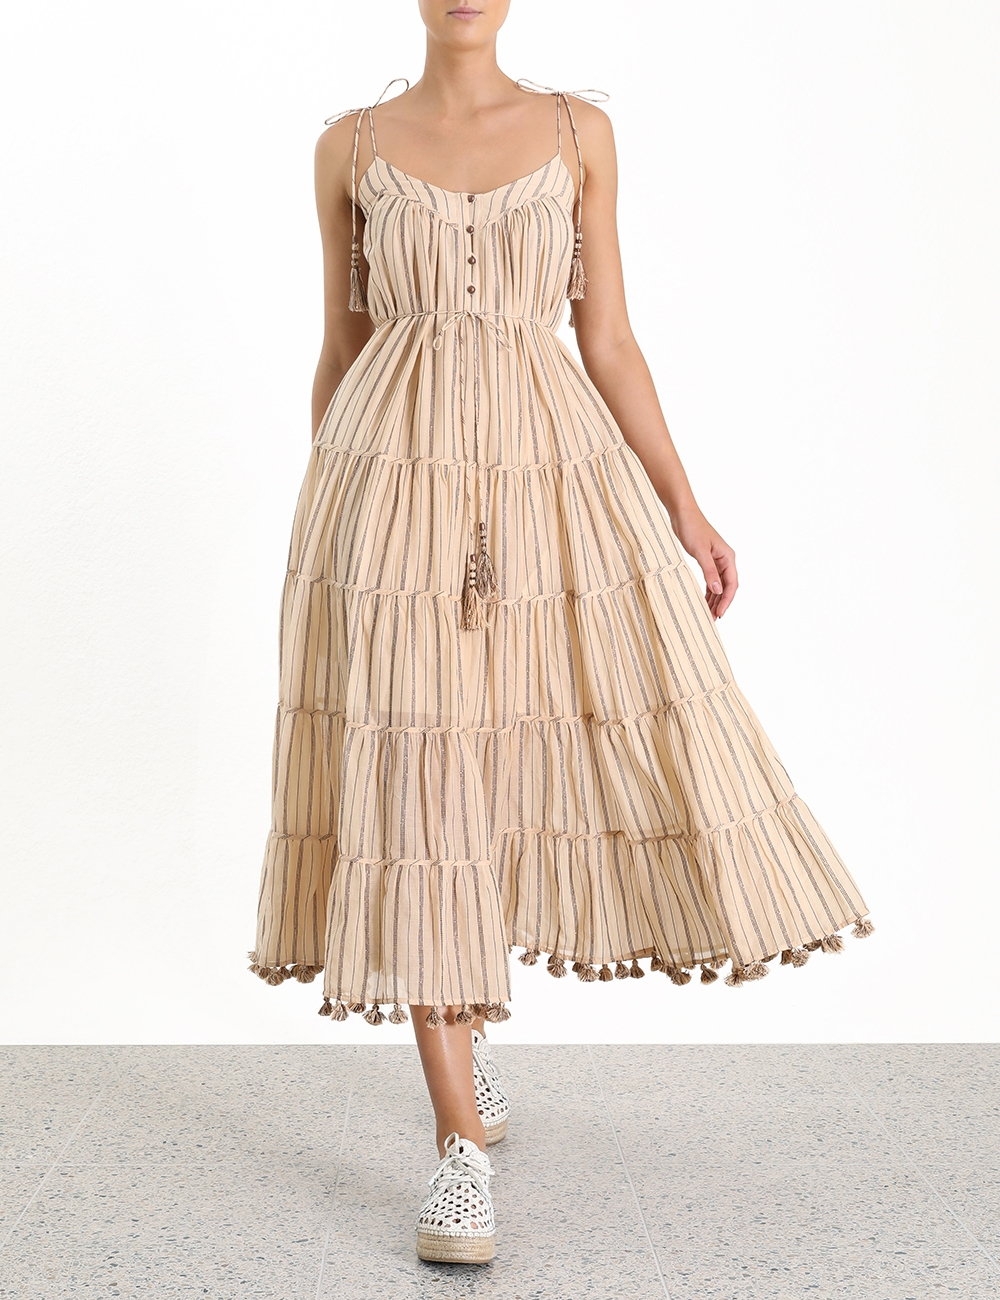 Suraya Bronze Stripe Tie Dress